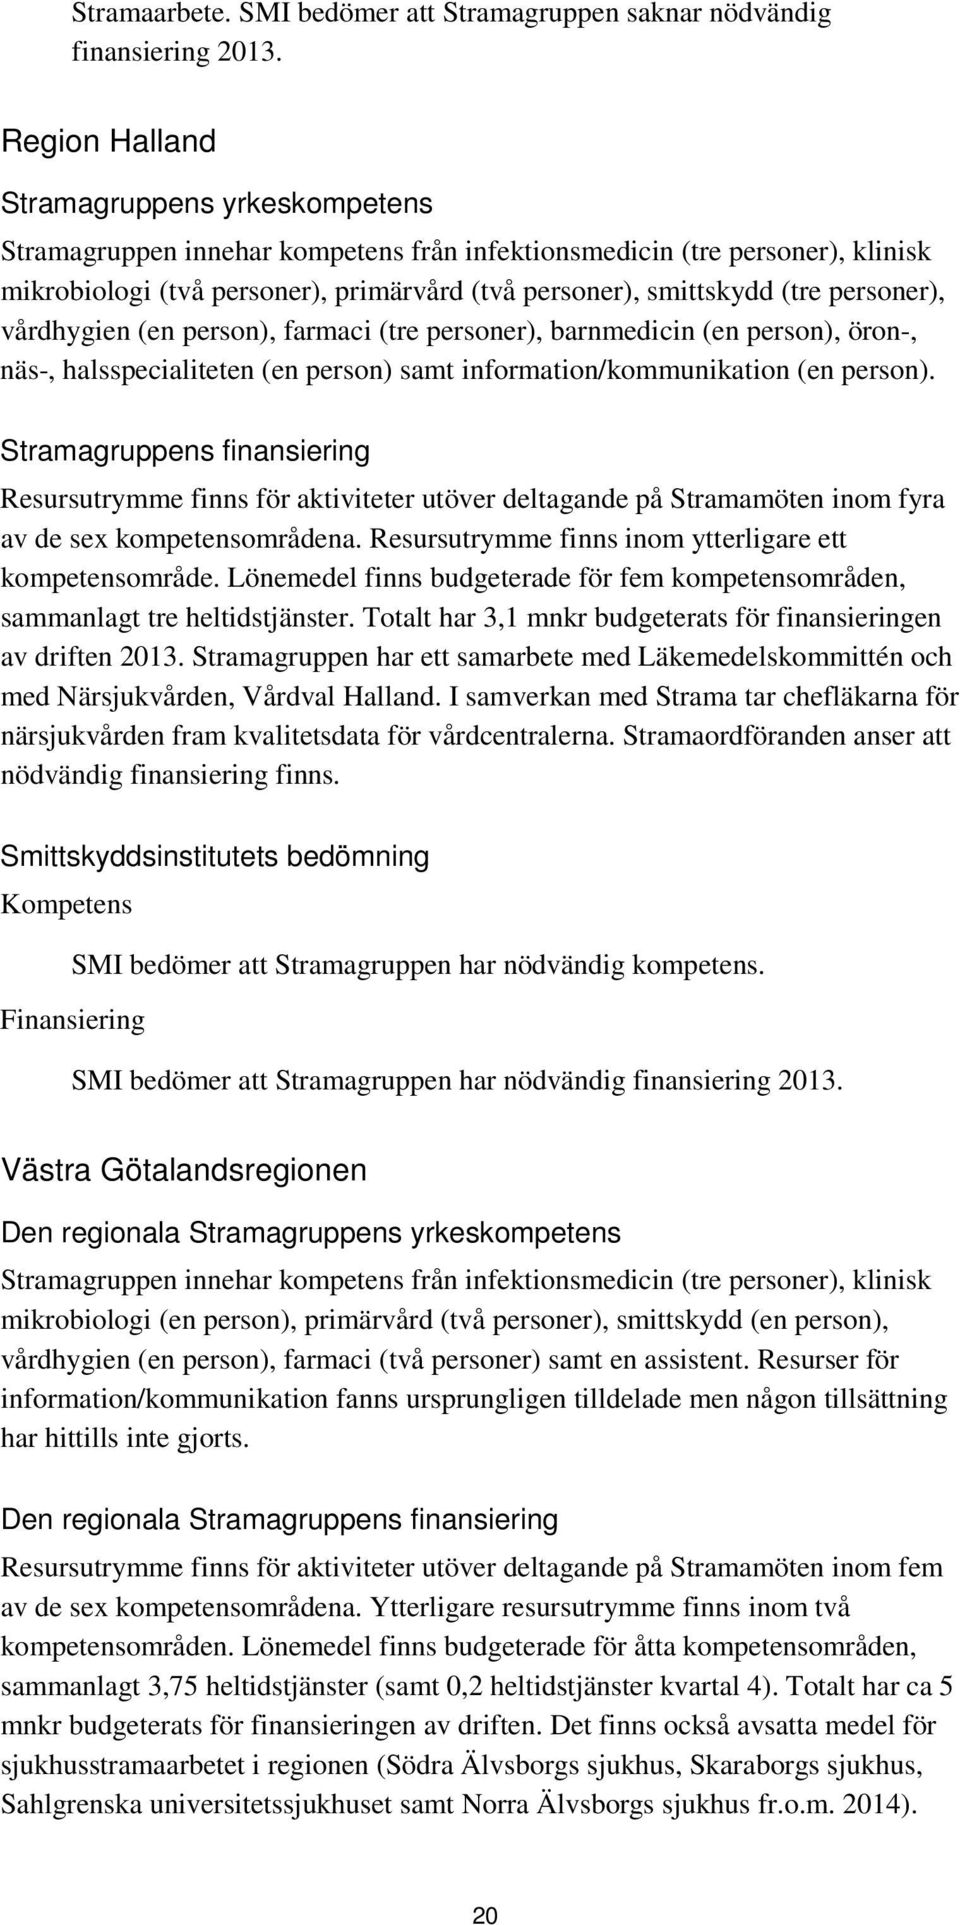 personer), vårdhygien (en person), farmaci (tre personer), barnmedicin (en person), öron-, näs-, halsspecialiteten (en person) samt information/kommunikation (en person).